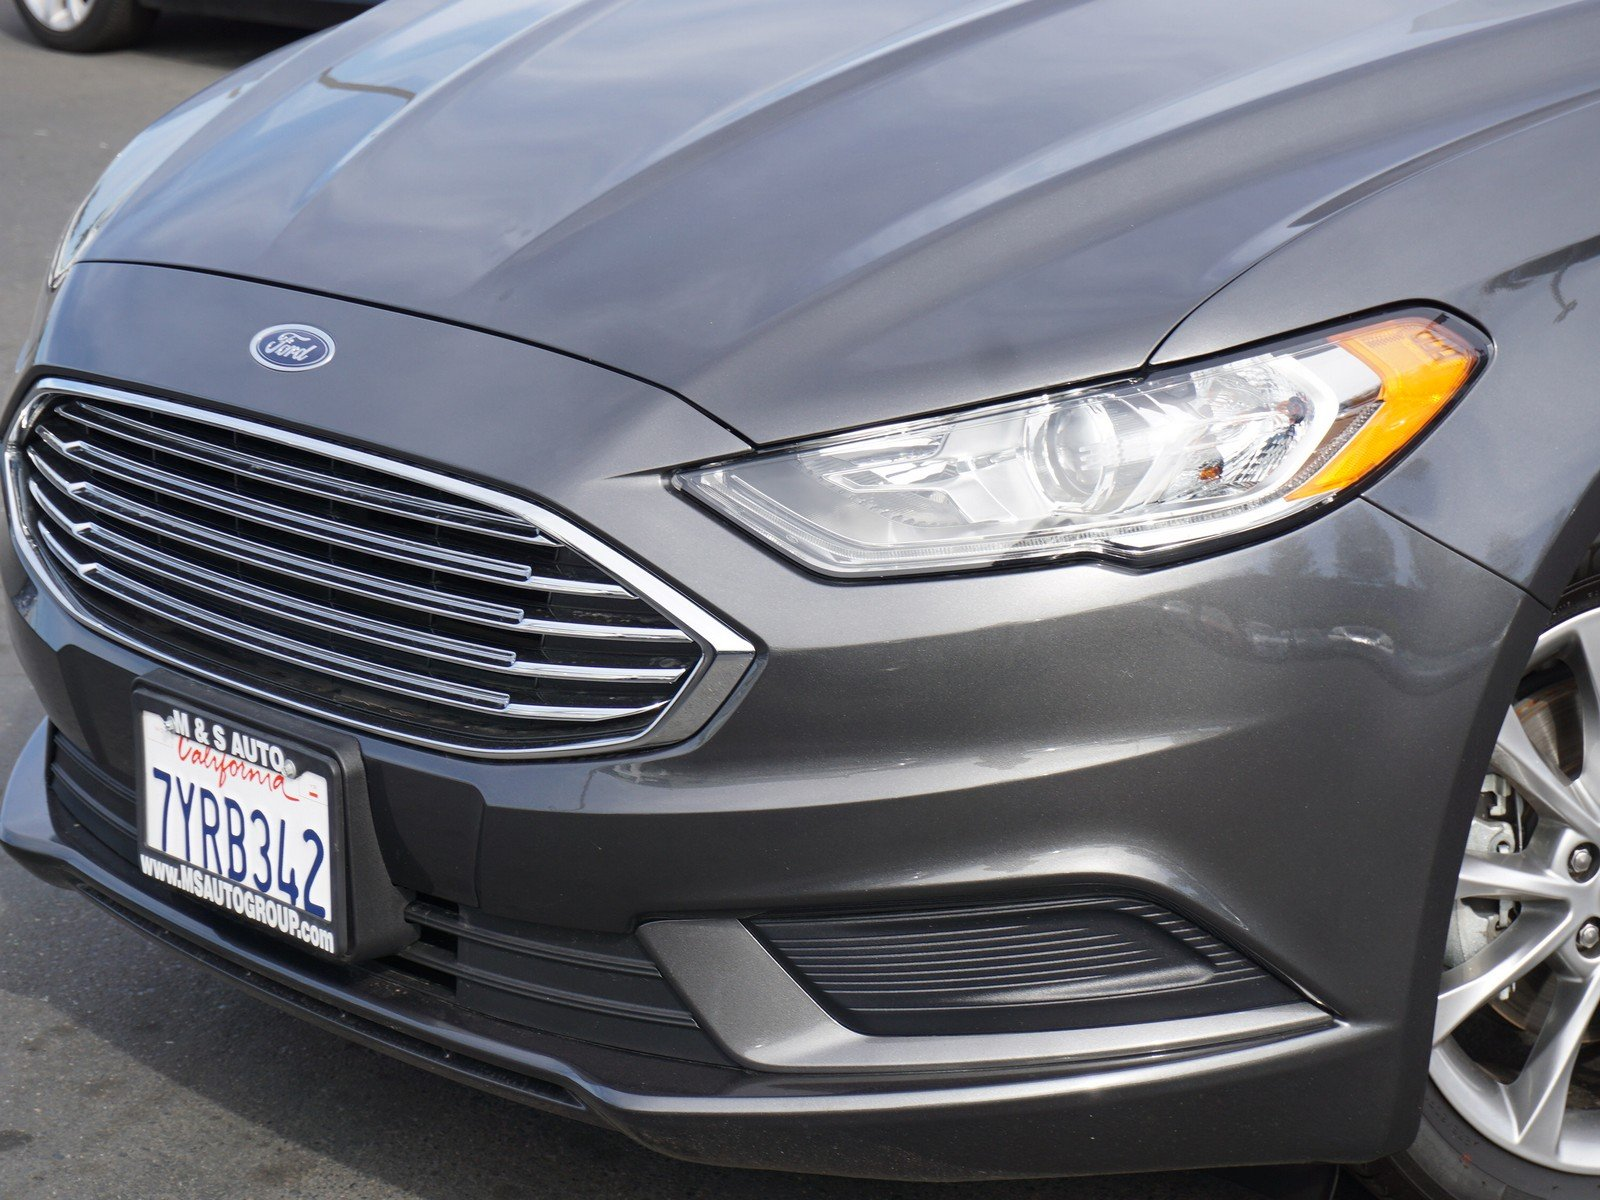 Pre Owned 2017 Ford Fusion SE 4dr Car in Sacramento A